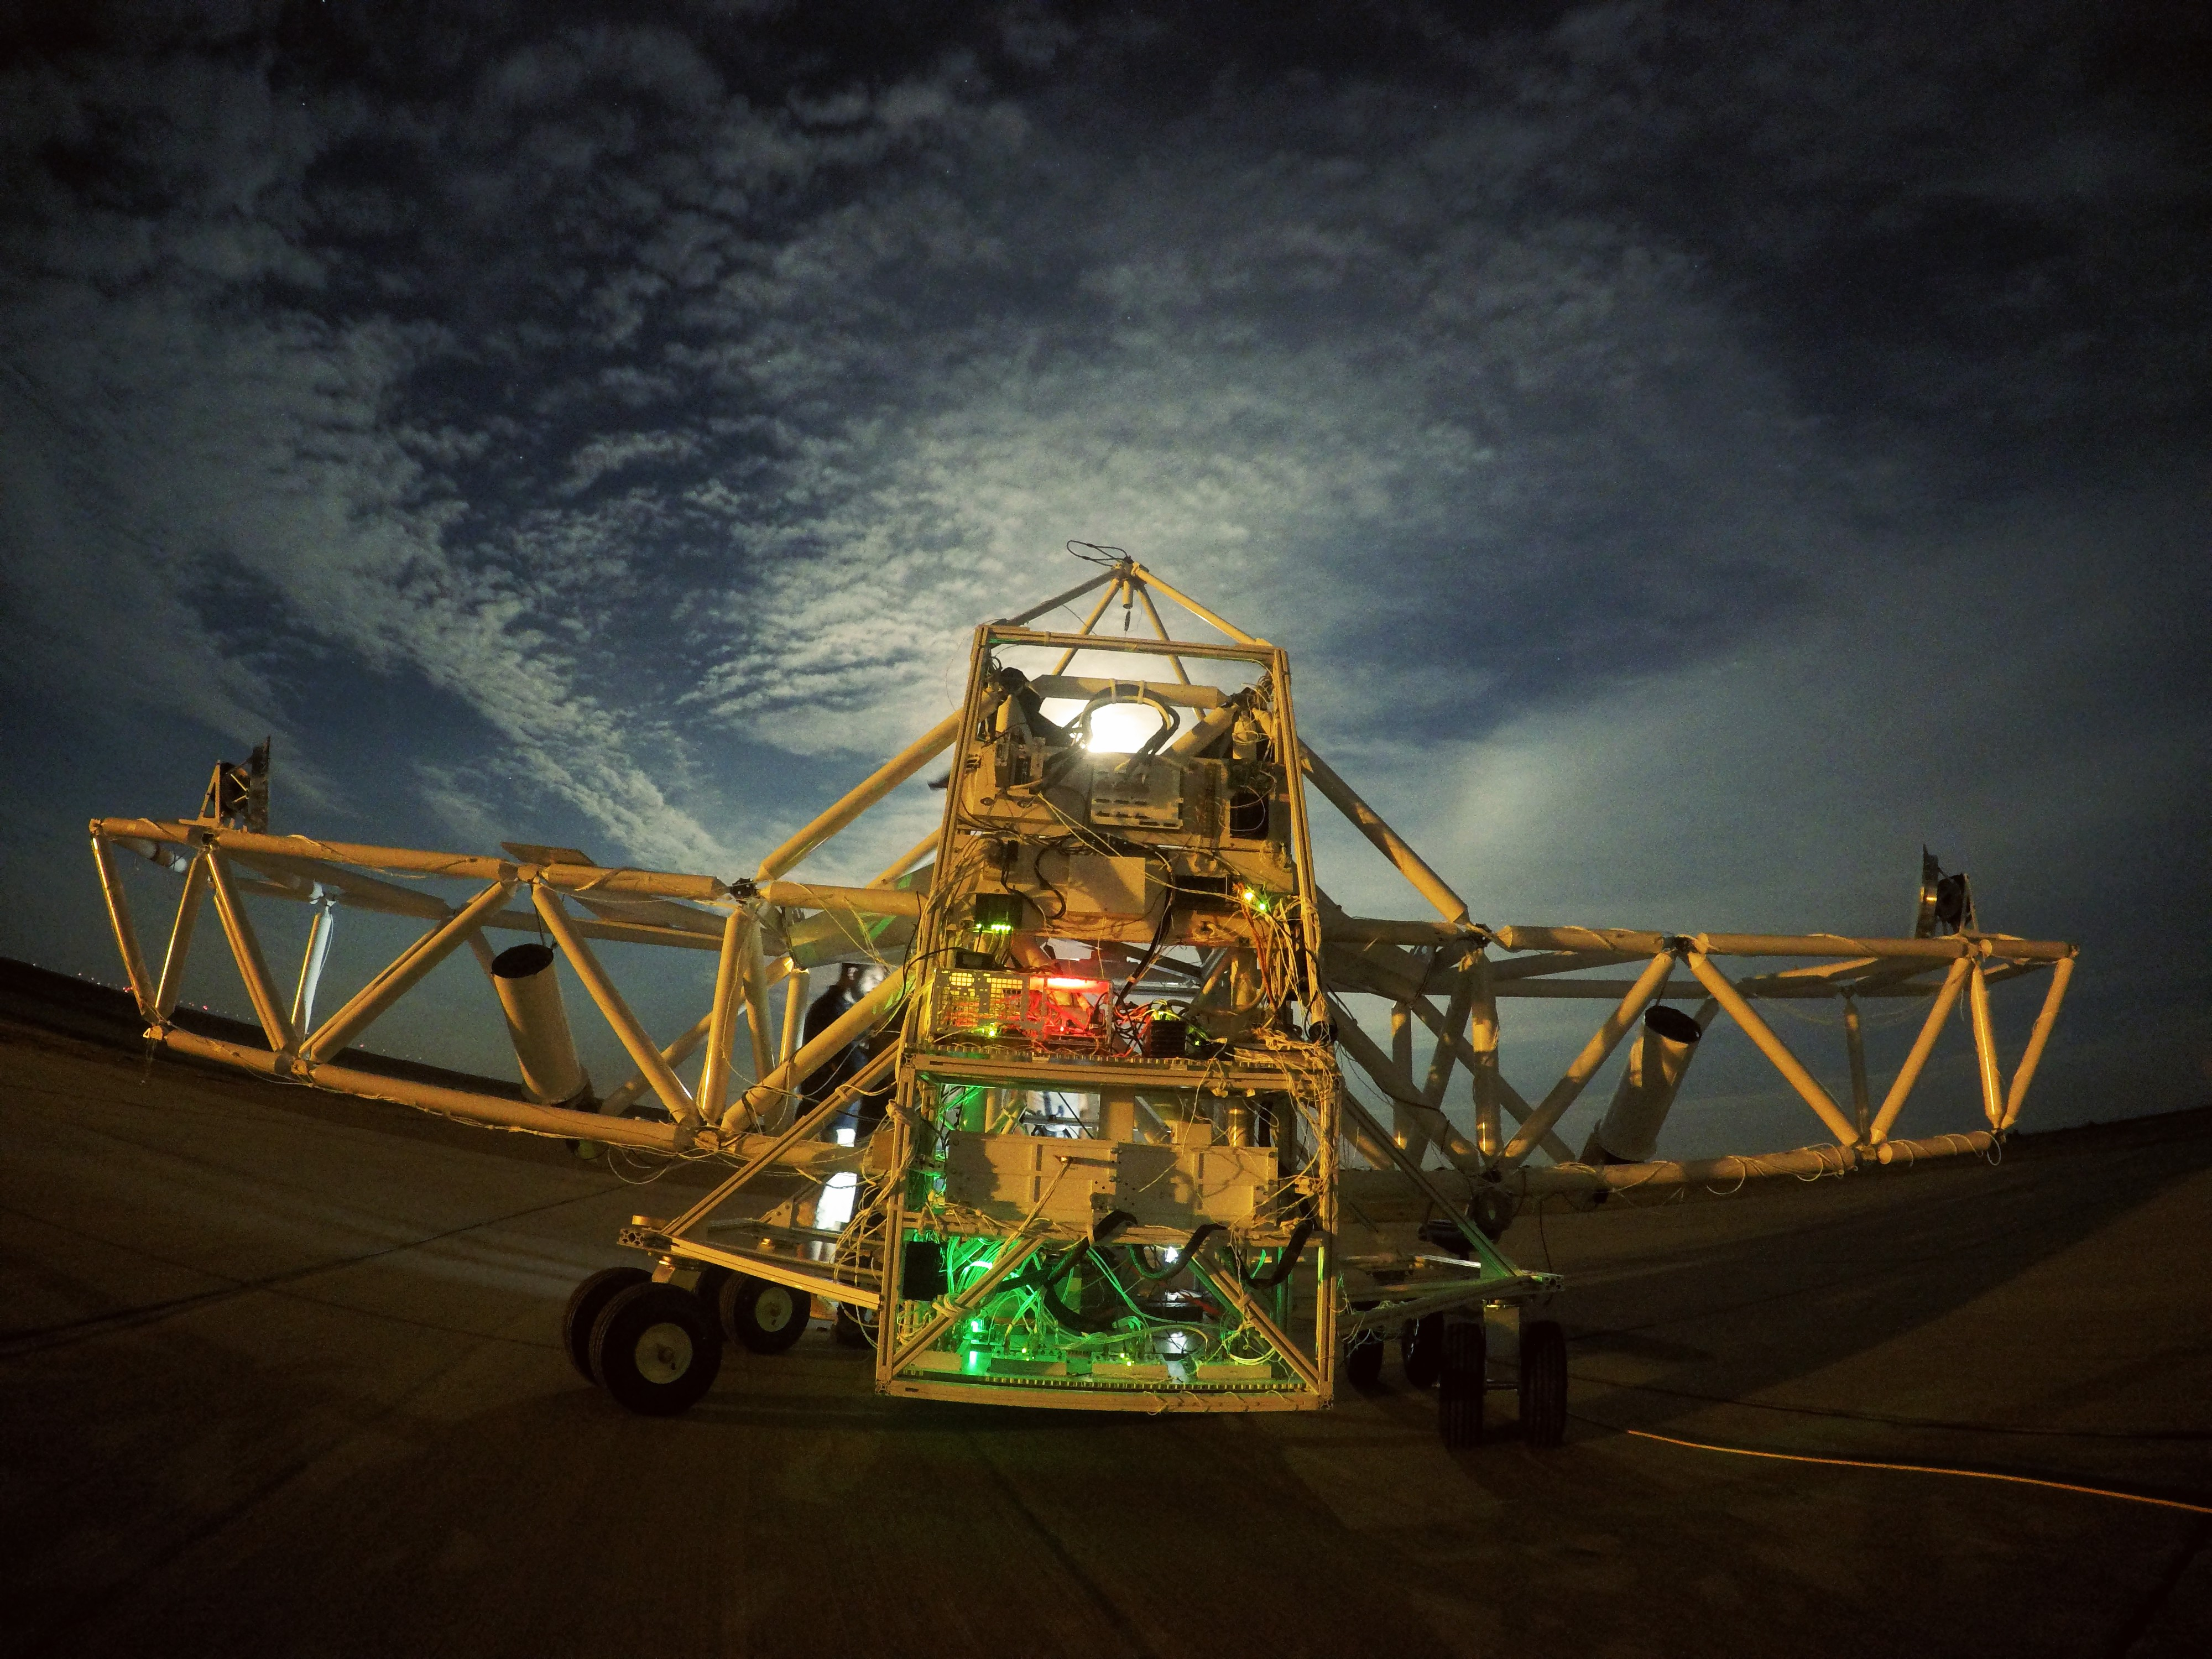 BETTII in Fort Sumner during night testing